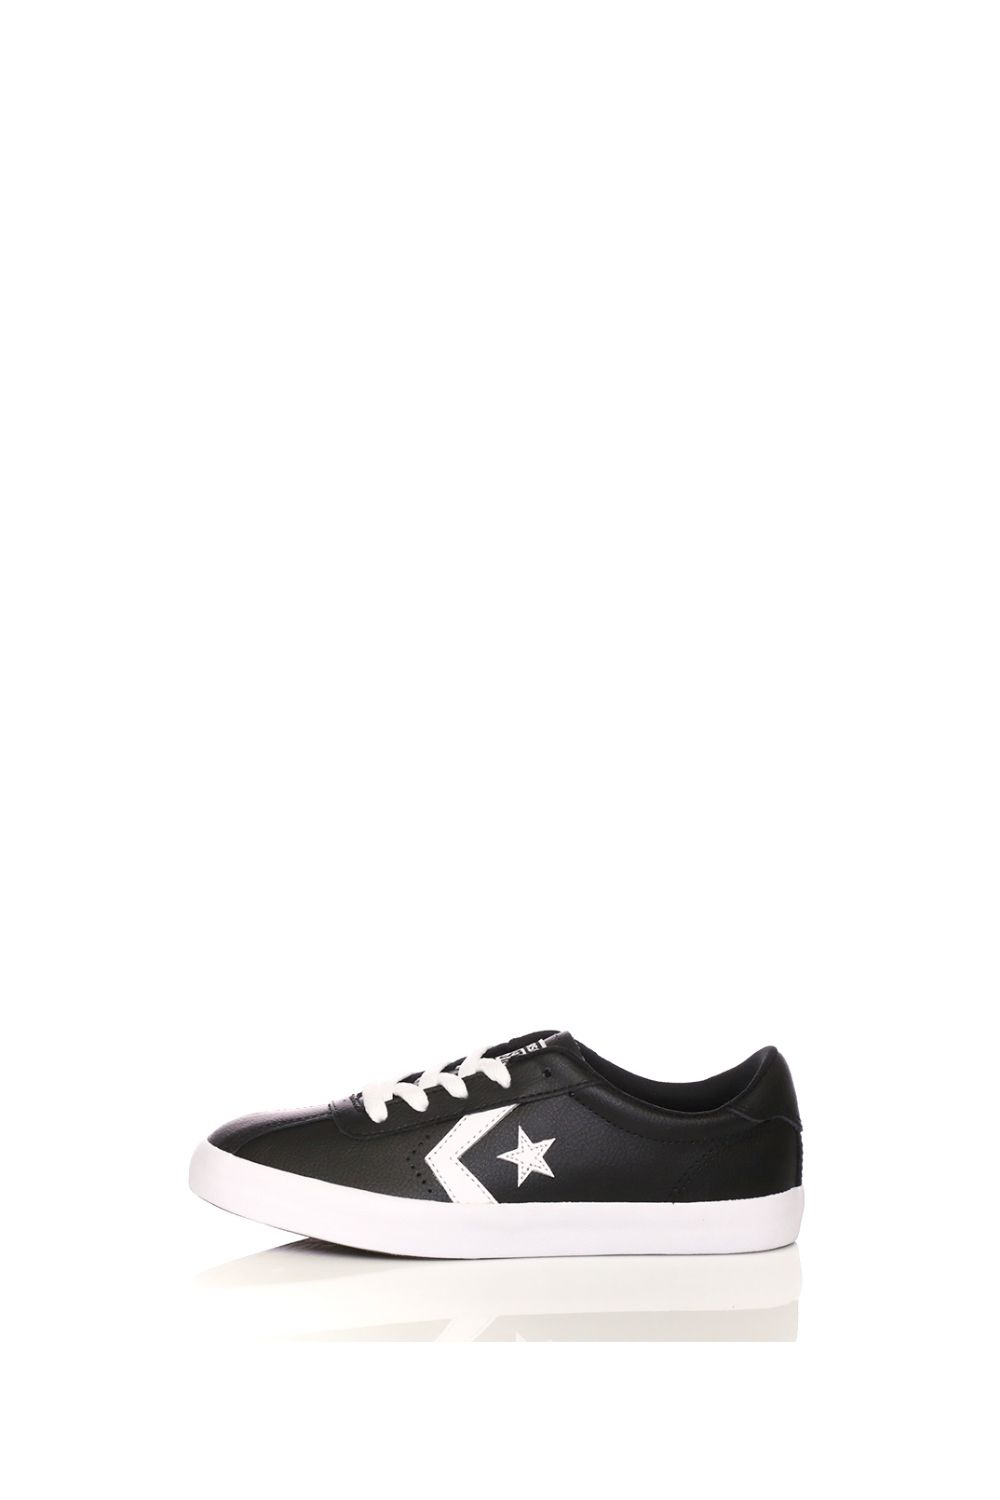 -48% Collective Online CONVERSE – Παιδικά παπούτσια CONVERSE Breakpoint Ox  μαύρα c8dfe088afd